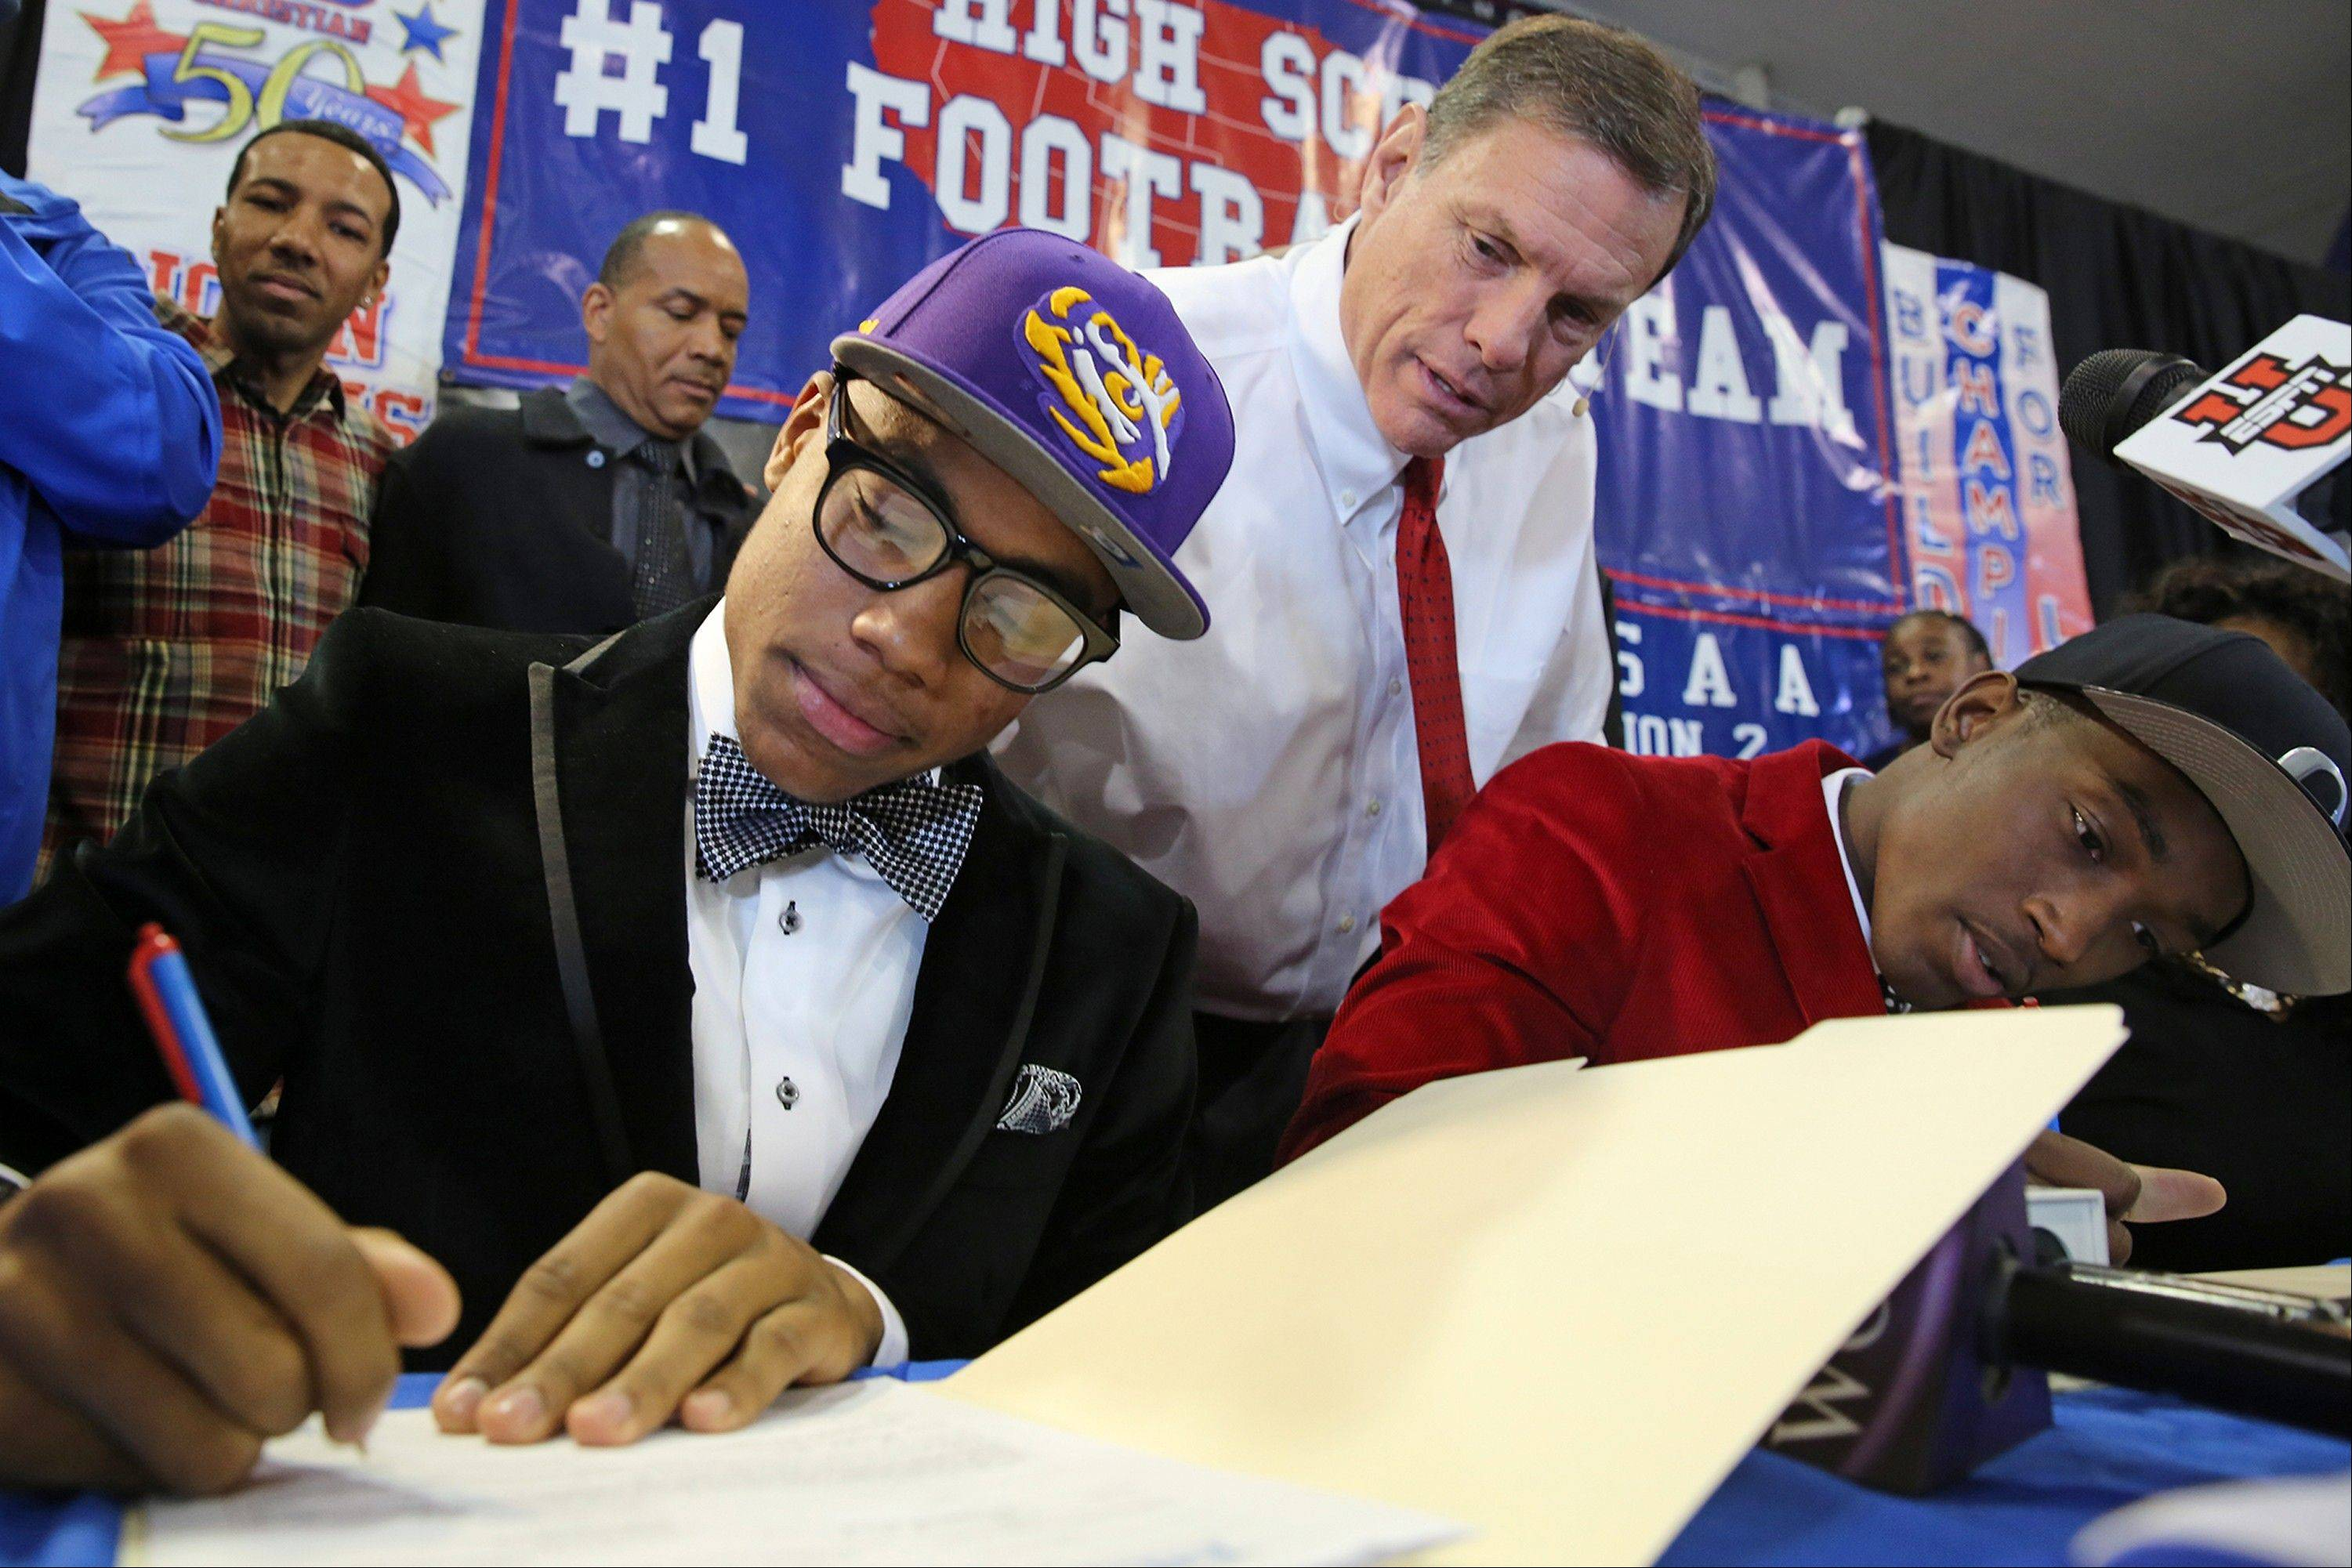 John Curtis High School football coach J.T. Curtis watches as Malachi Dupre signs his letter of intent for LSU in the high school's gym on Wednesday's National Signing Day.